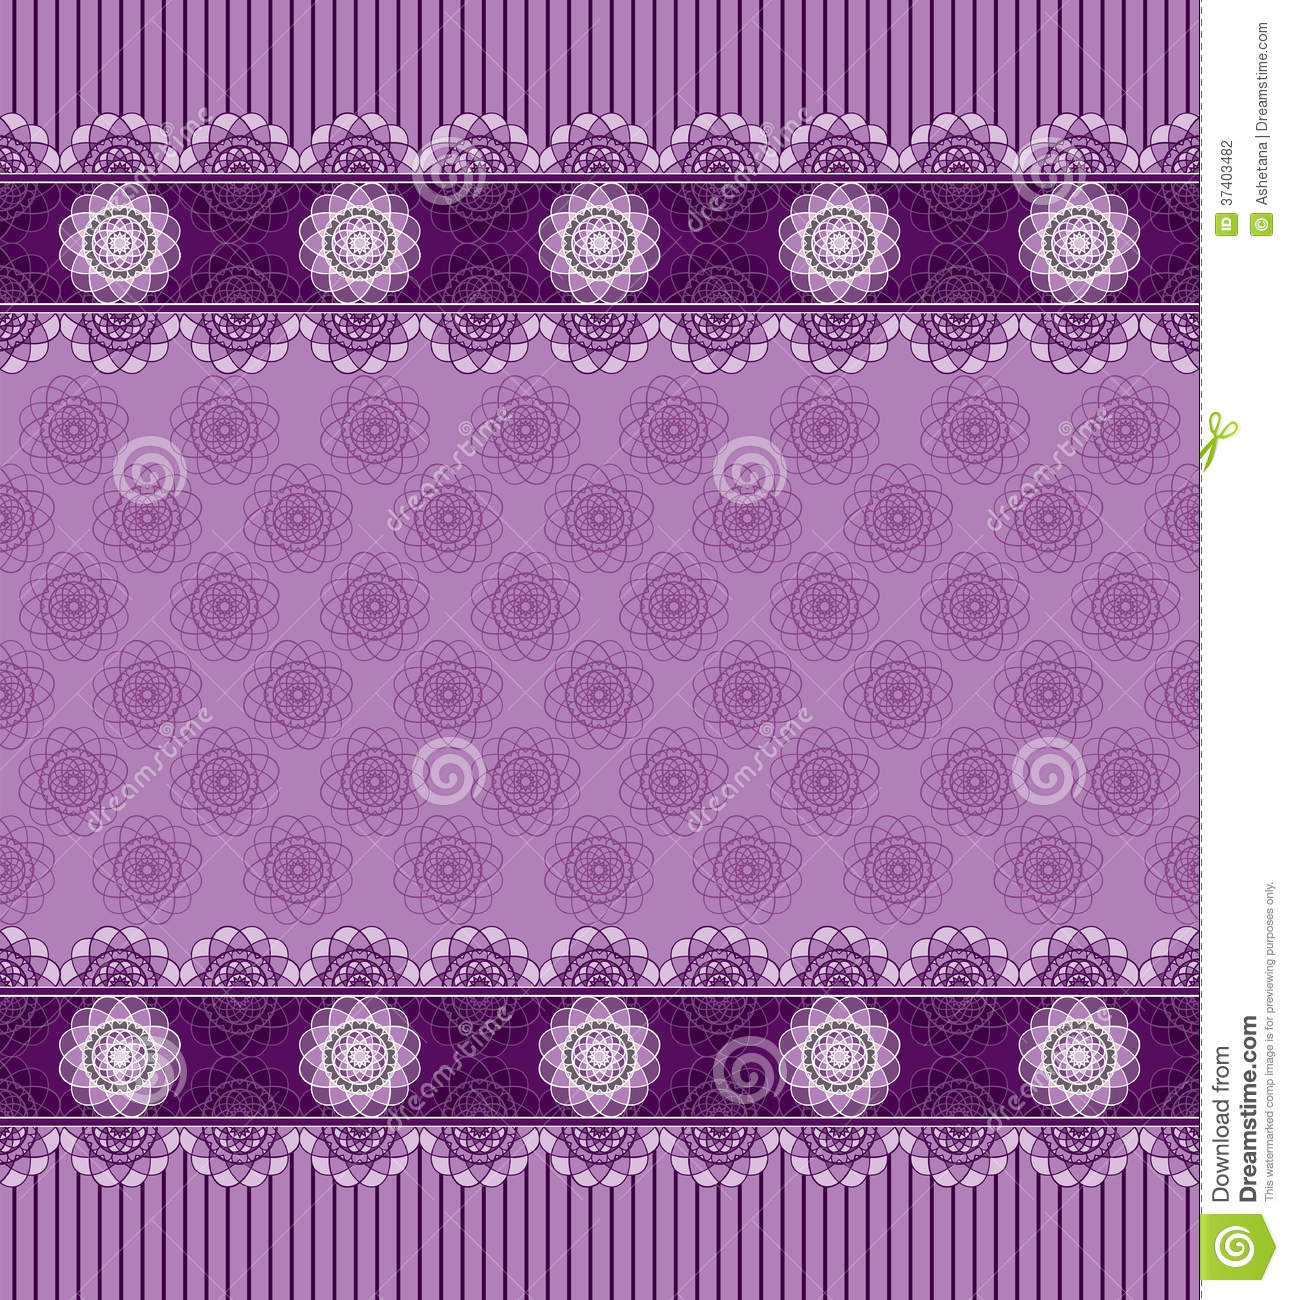 Seamless Purple Background With Lace Border Stock Vector ...